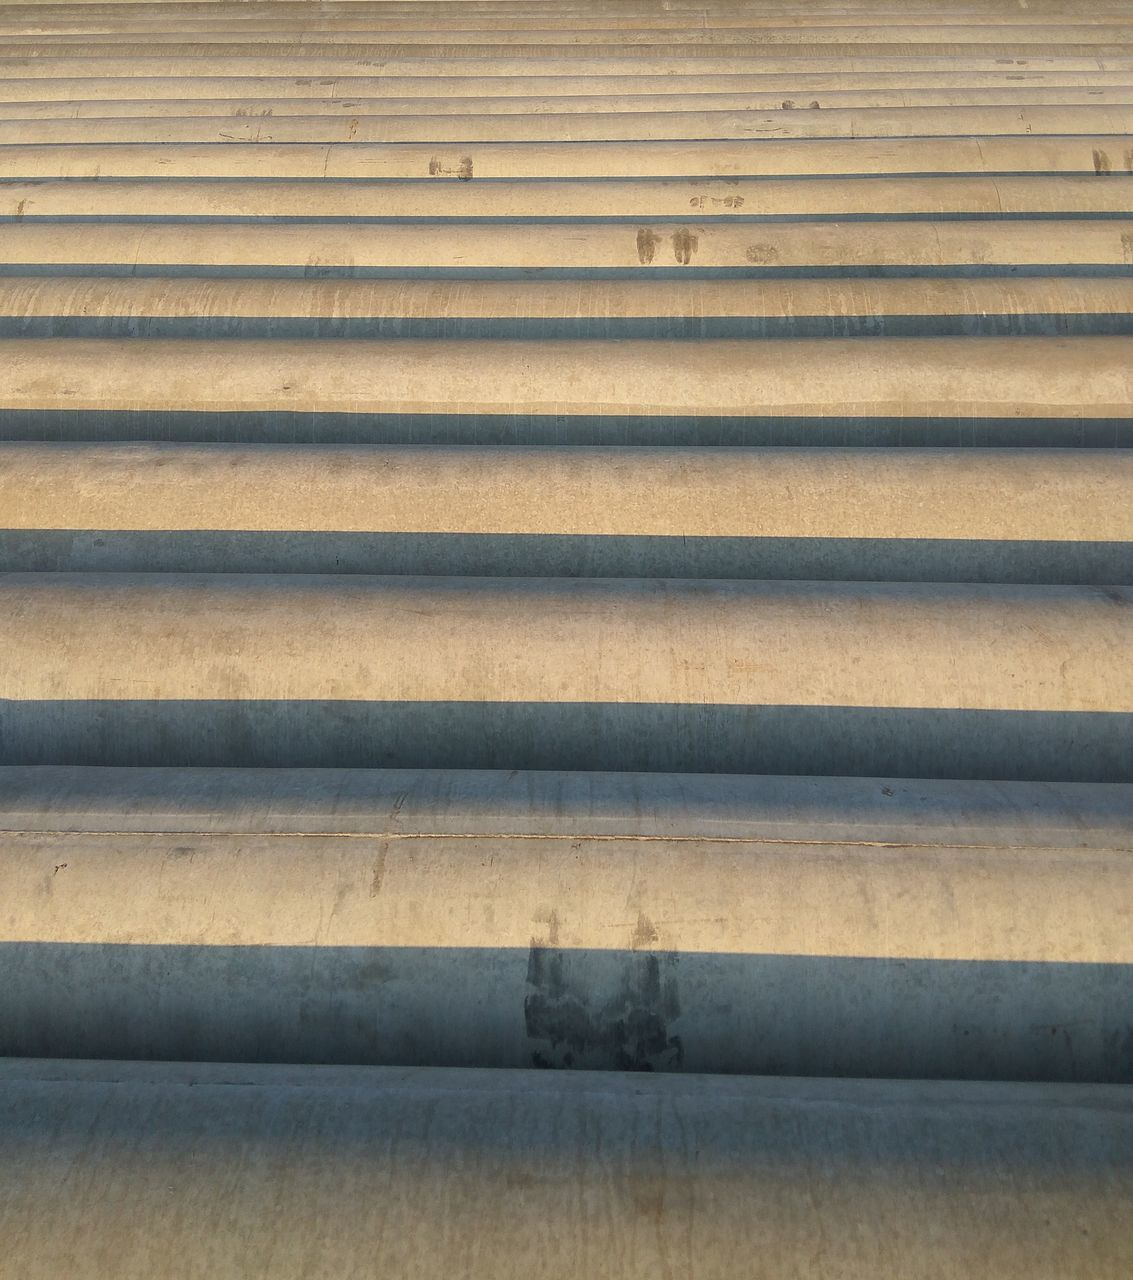 backgrounds, pattern, full frame, wood - material, steps, no people, textured, indoors, corrugated iron, day, close-up, line